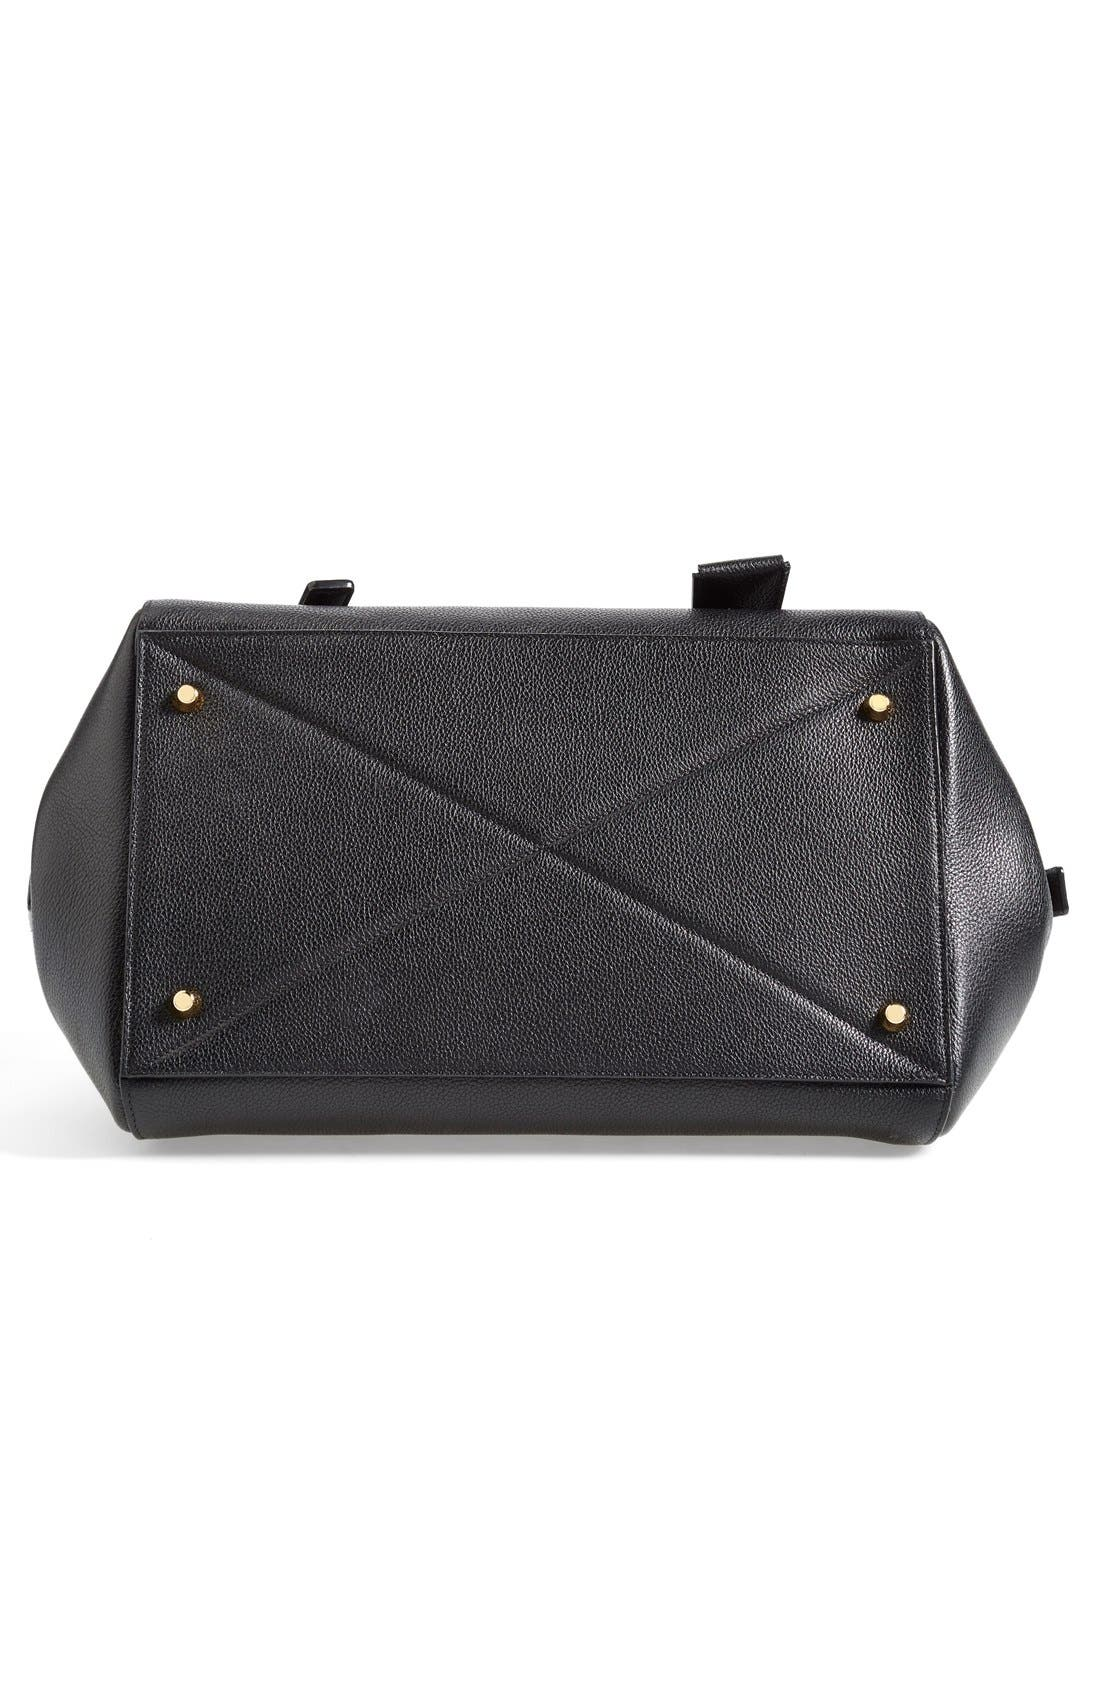 'Small Incognito' Leather Satchel,                             Alternate thumbnail 3, color,                             001